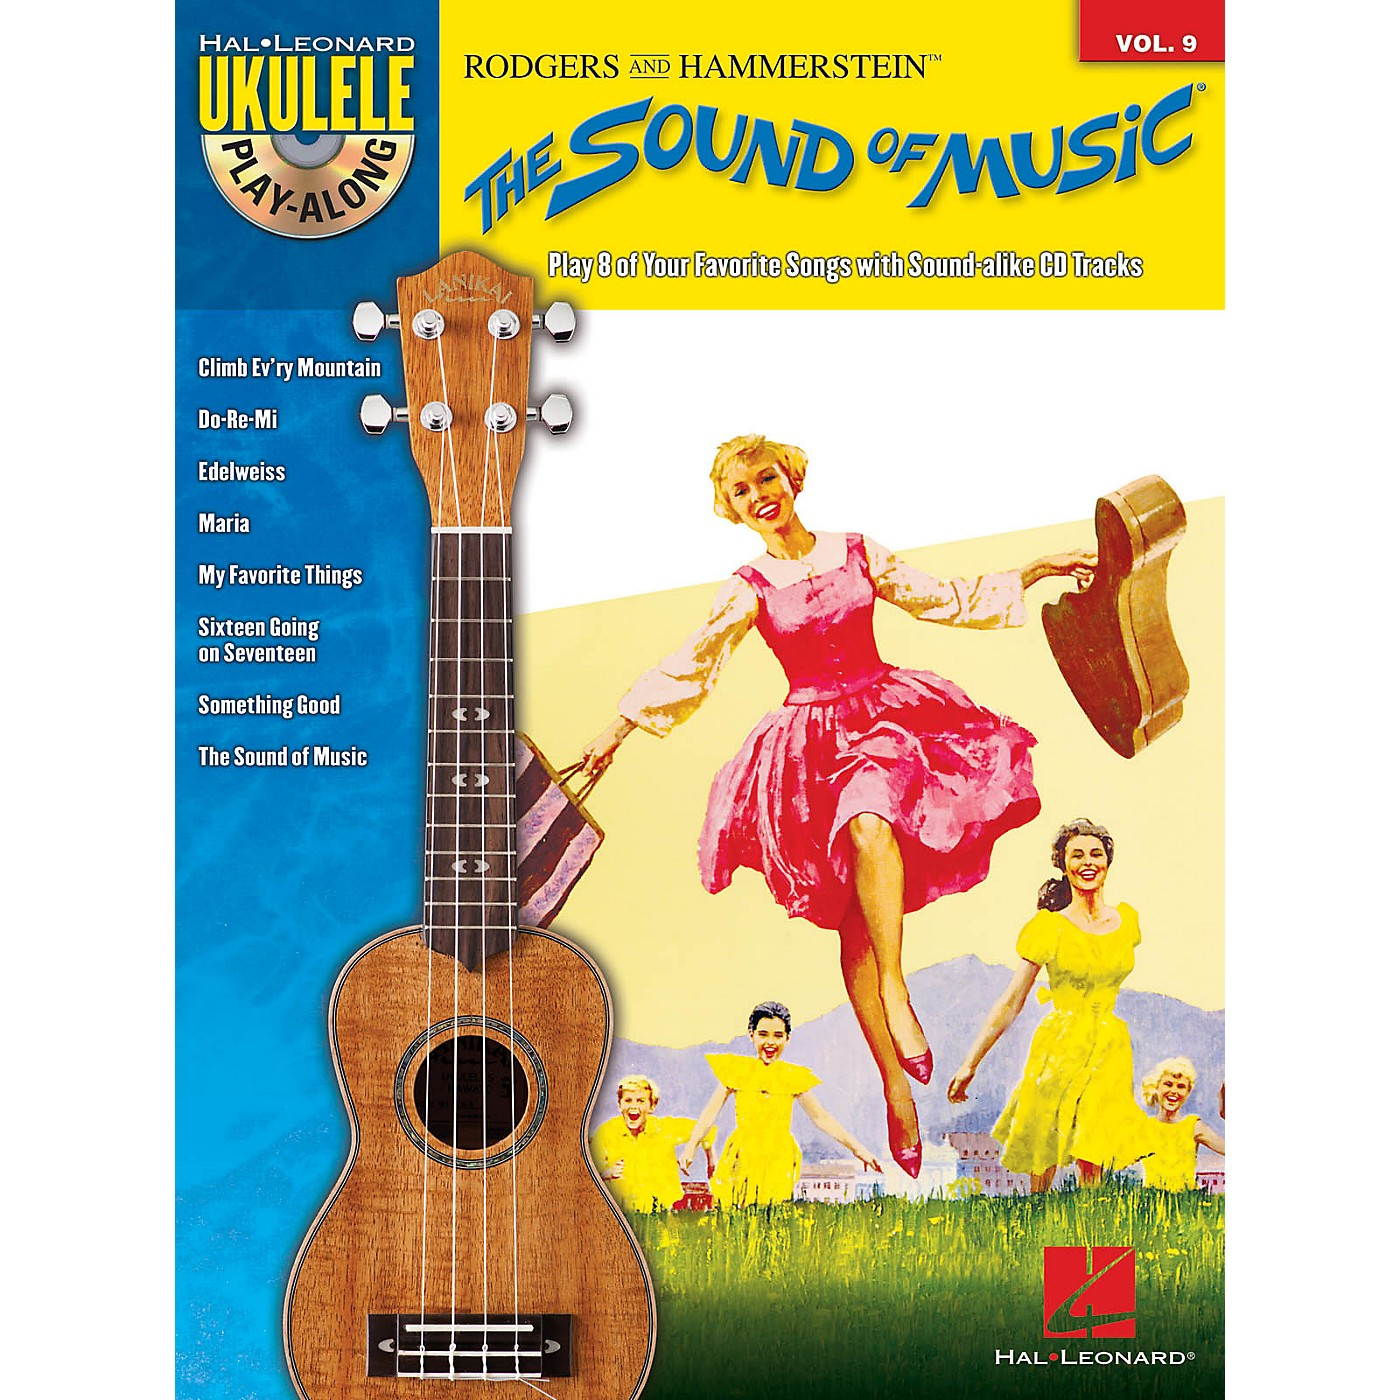 Hal Leonard The Sound of Music (Ukulele Play-Along Volume 9) Ukulele Play-Along Series Softcover with CD thumbnail